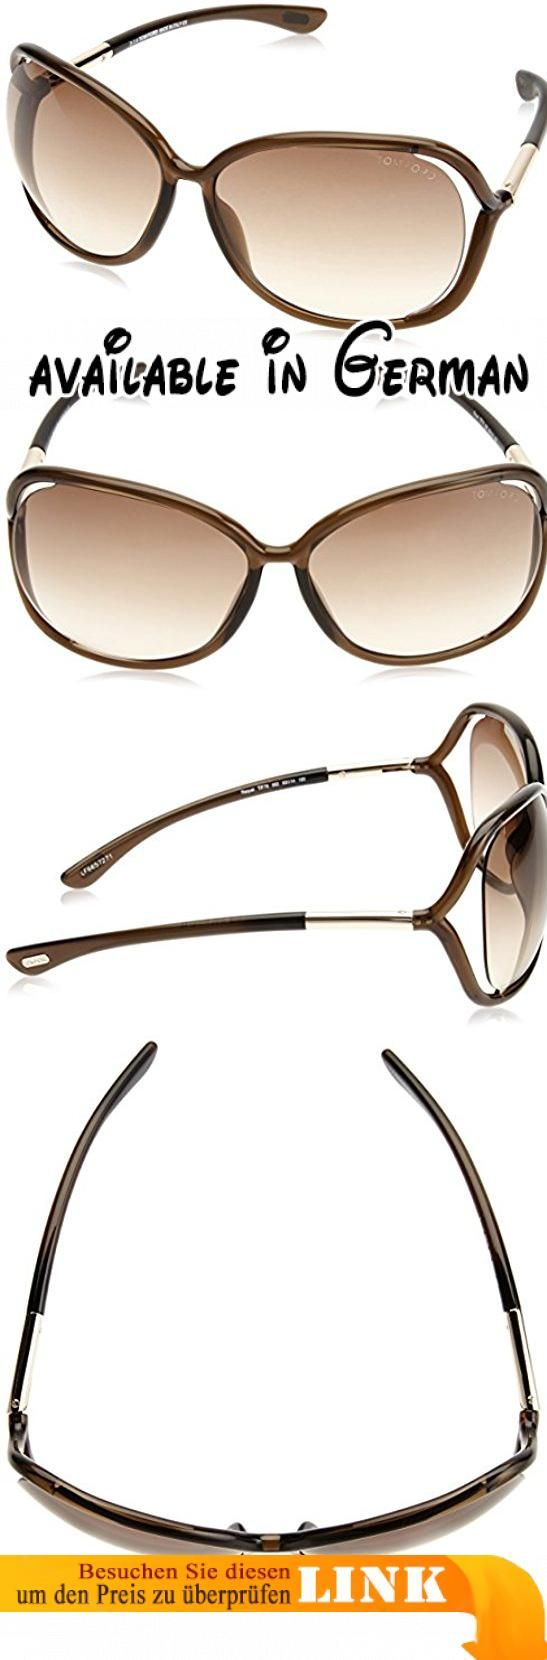 Tom Ford Sonnenbrille 76 (63 mm) Marrón, 63. Lens Width = 63mm. Nose Bridge Width = 14mm. Arm Length = 120mm. Sunglasses, Sunglasses Case, Cleaning Cloth and Care Instructions all Included. 100% Protection Against UVA & UVB Sunlight and Conform to British Standard EN 1836:2005 #Apparel #EYEWEAR